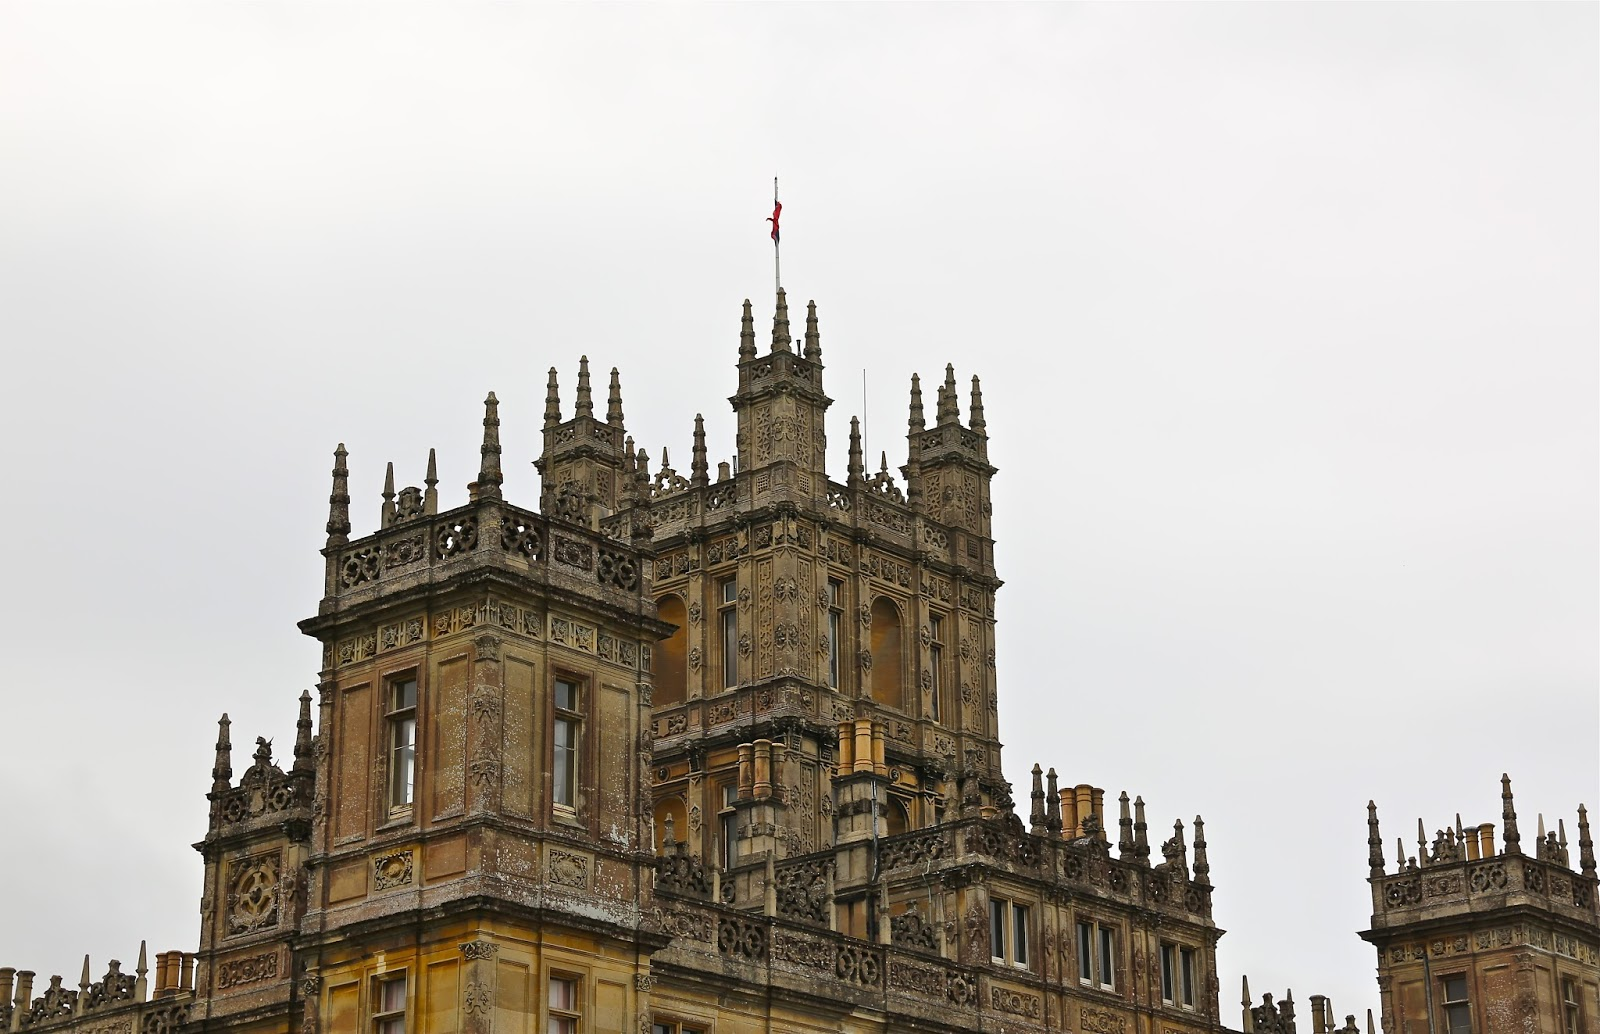 Sweet southern days visiting downton abbey for Downton abbey tour tickets